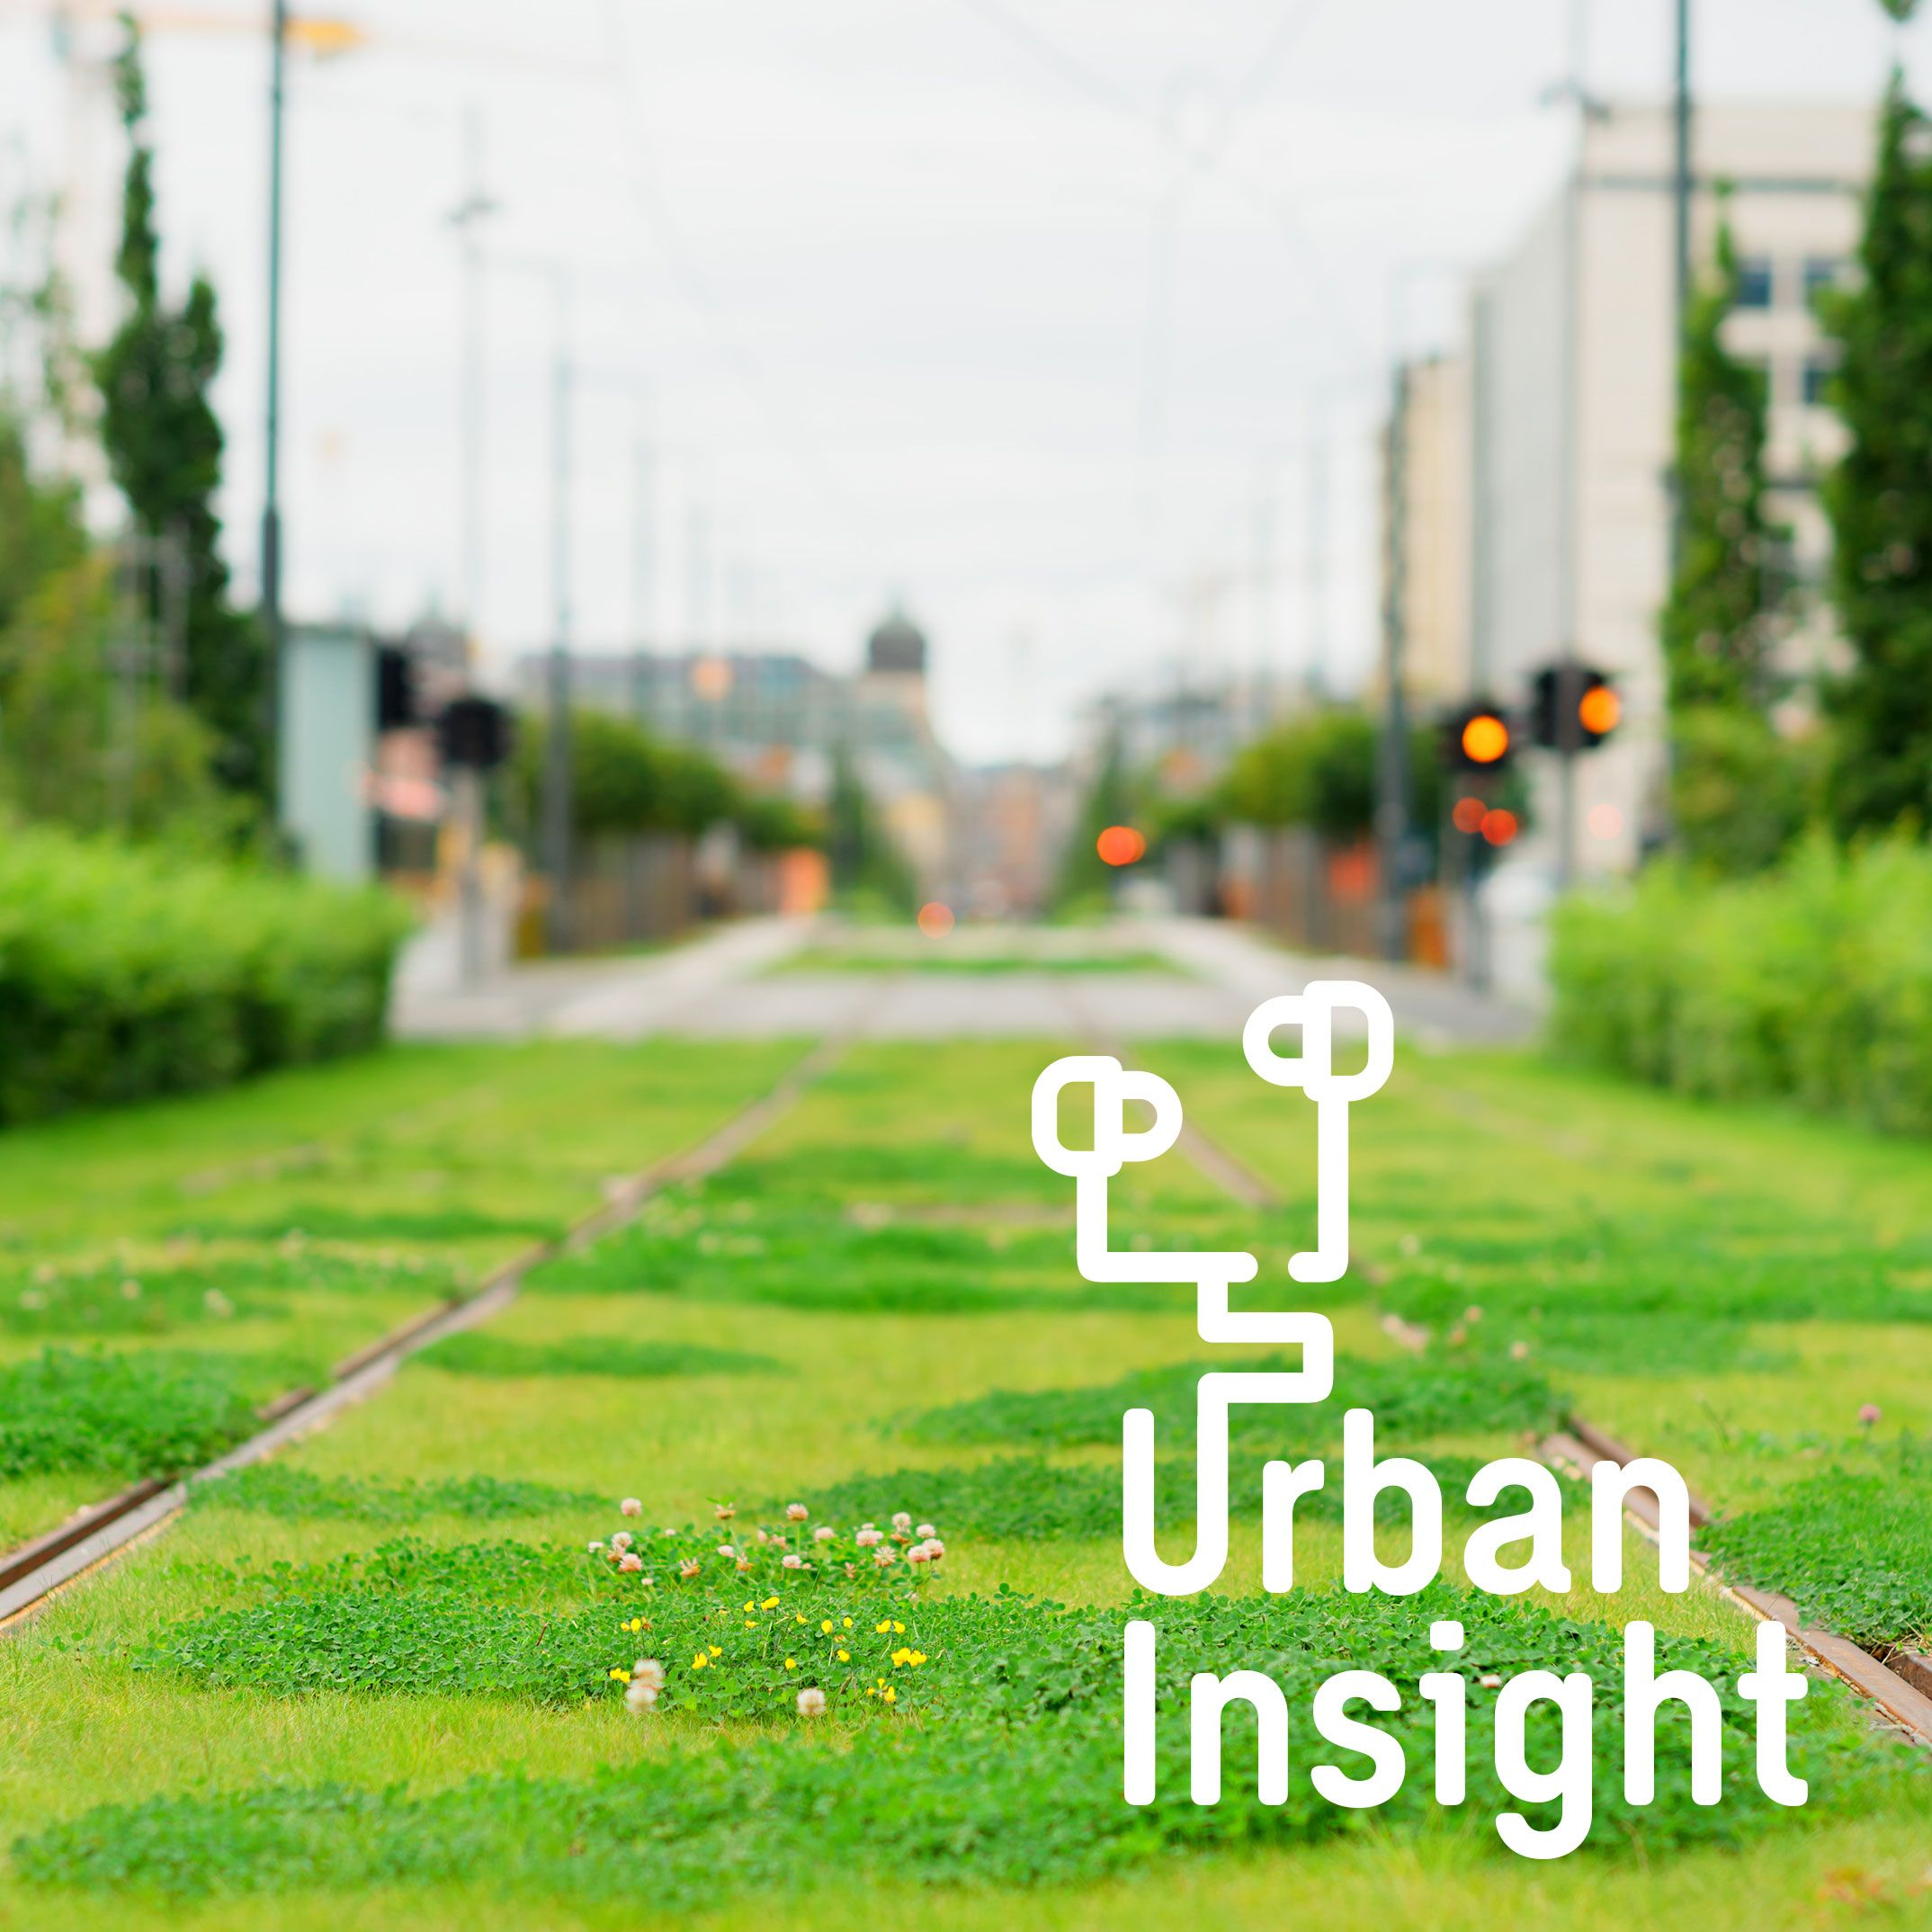 Urban insight - Sweco